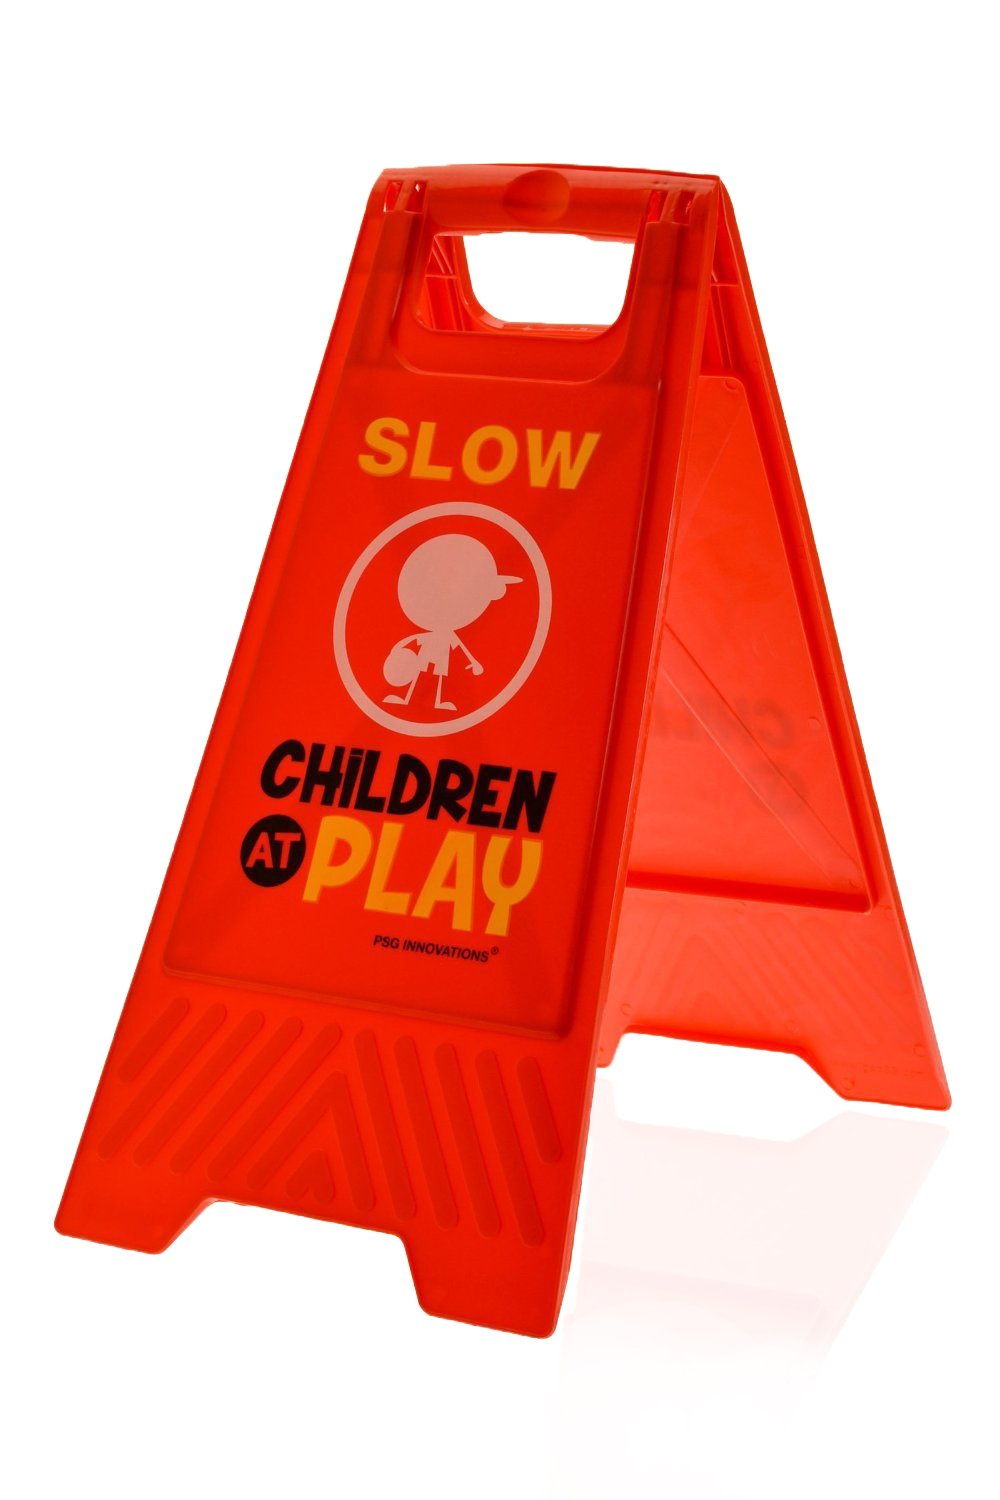 Children at Play Slow Sign for Yards and Driveways (Double-Sided, Red) - ''Slow, Children at Play''